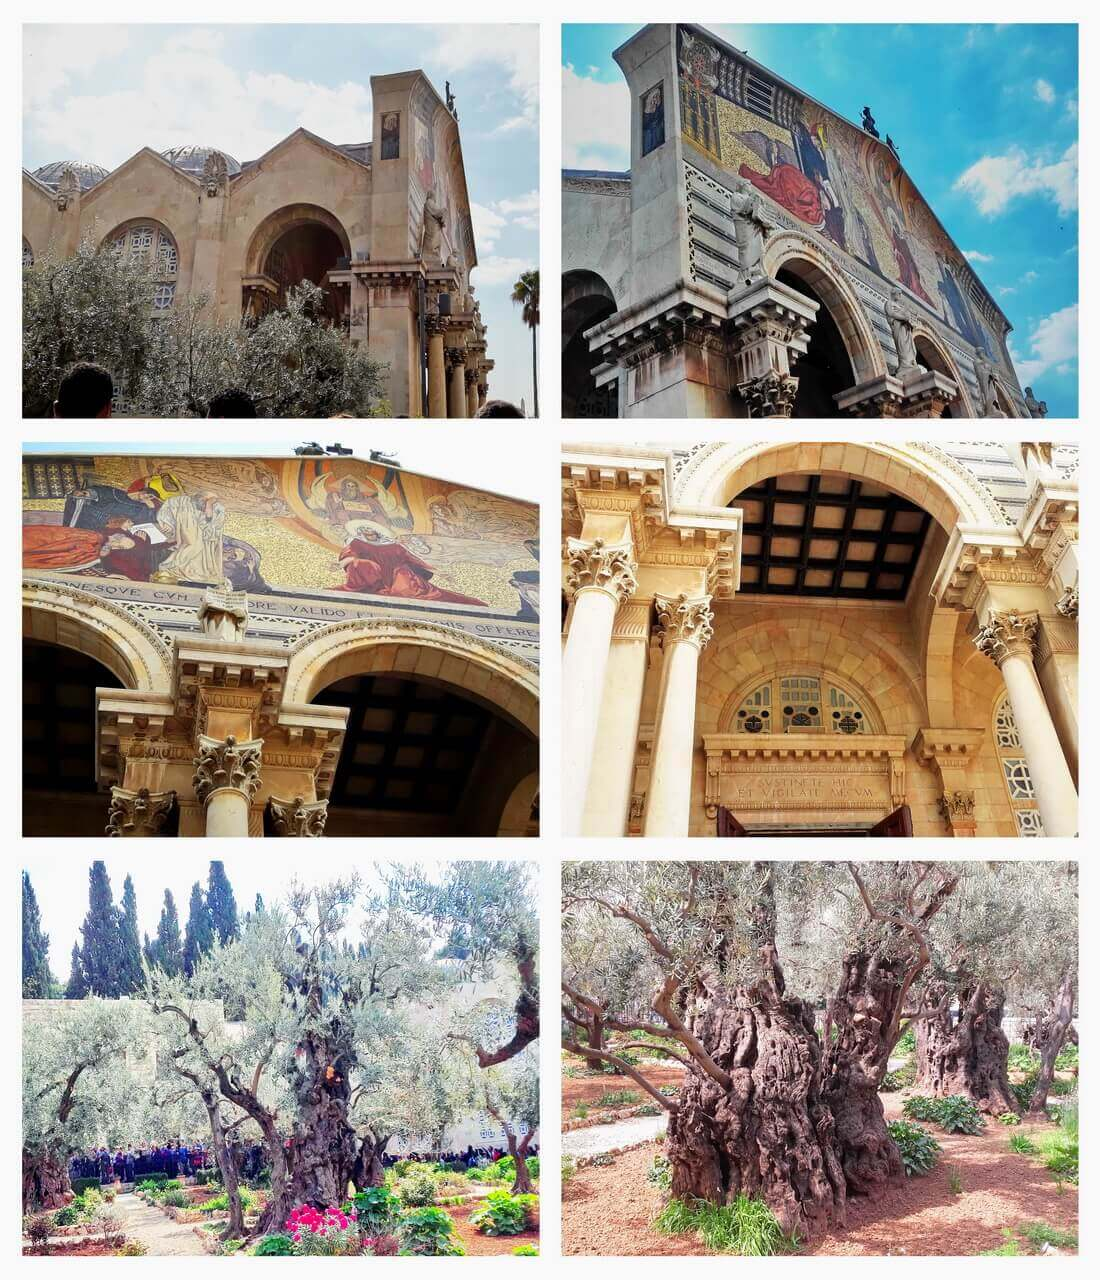 Jerusalem, the Garden of Gethsemane, and the Church of All Nation